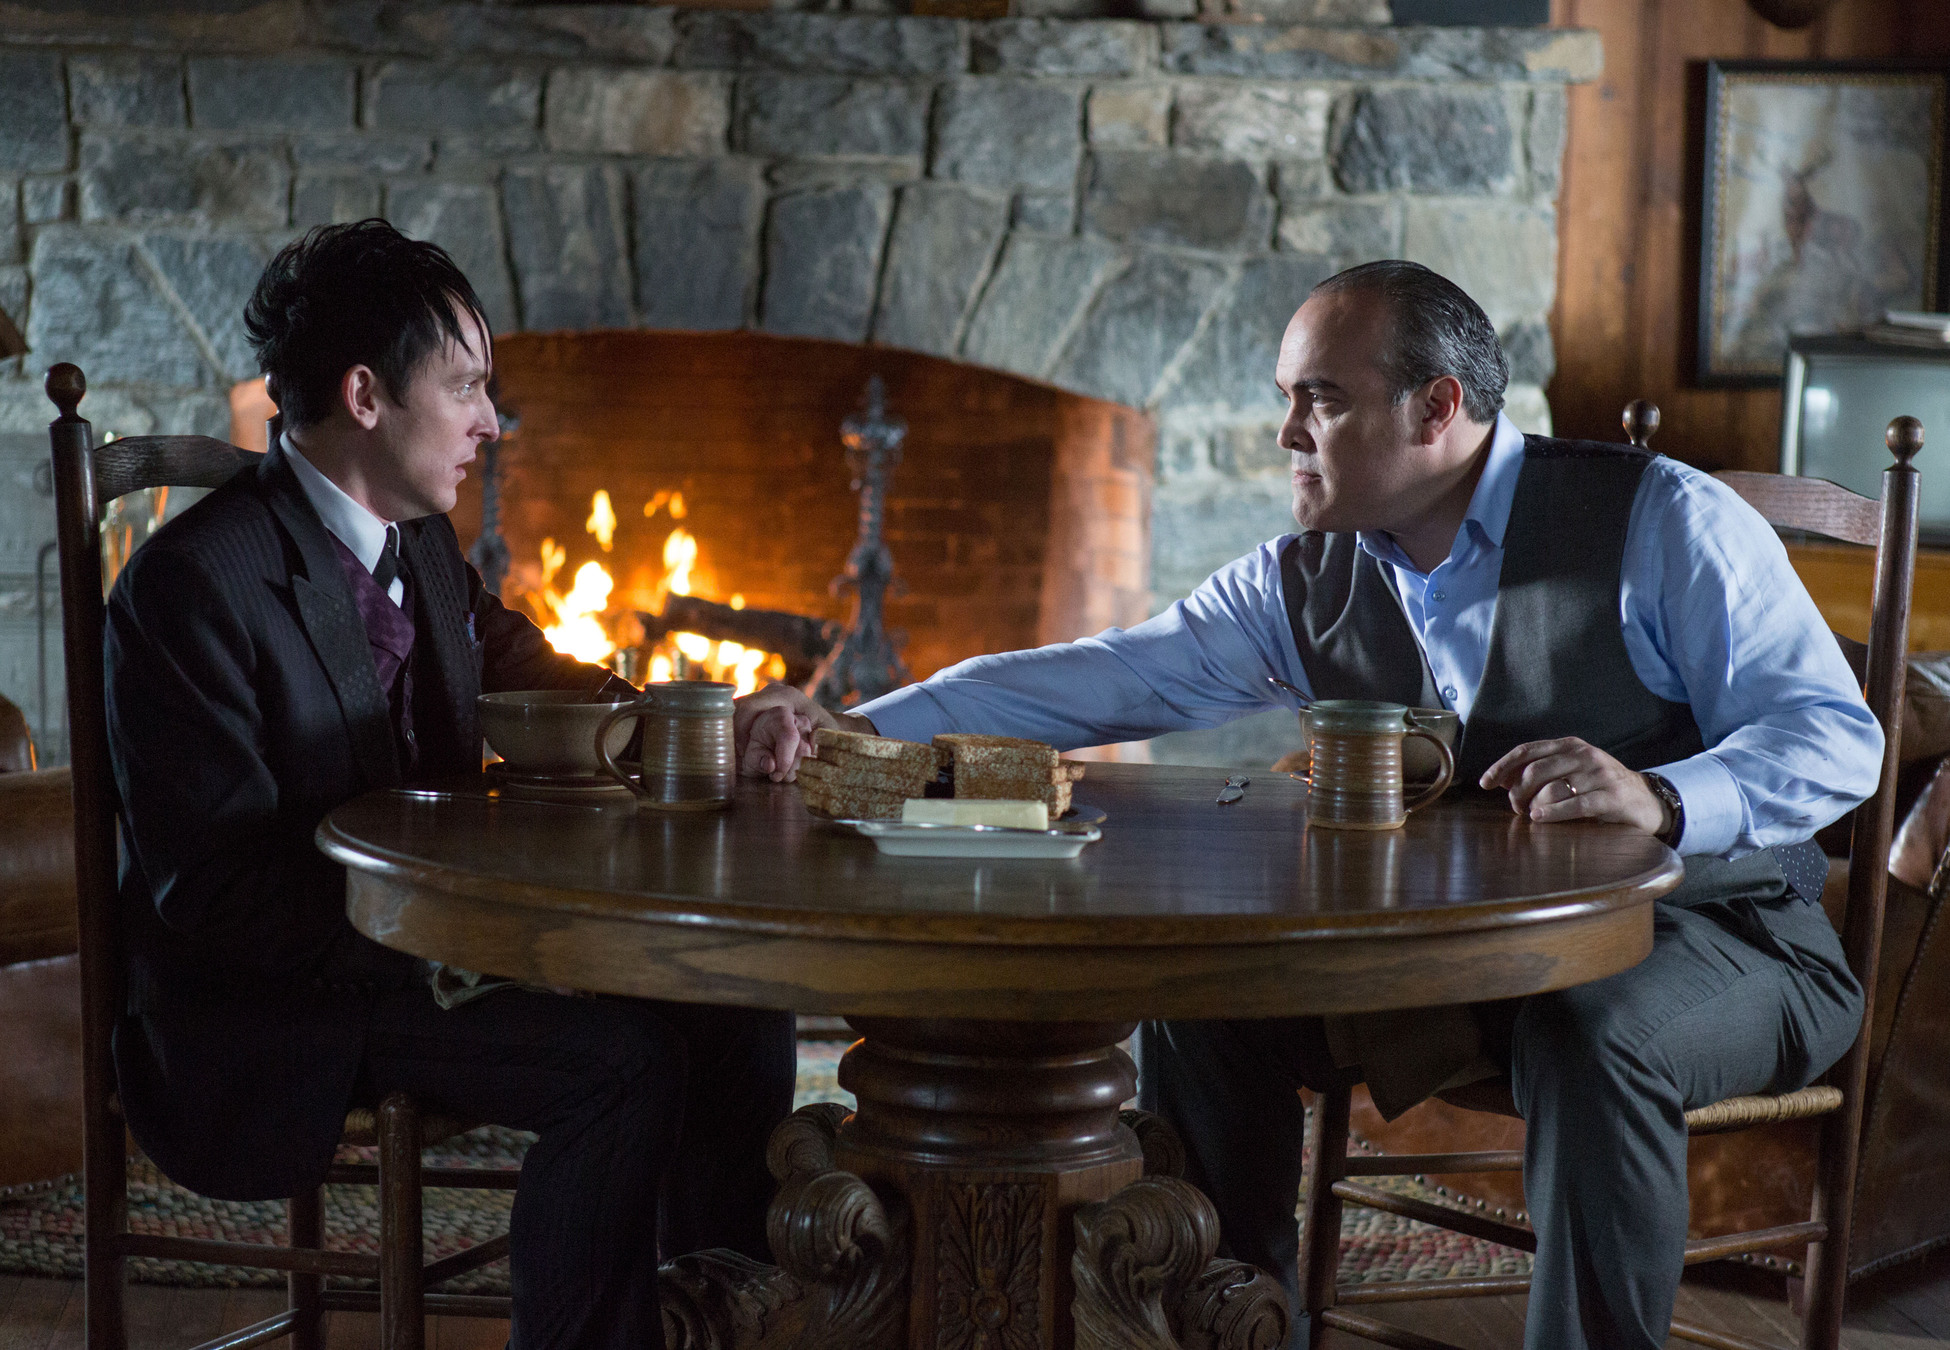 Gotham - Episode 1.14 - The Fearsome Dr. কপিকল